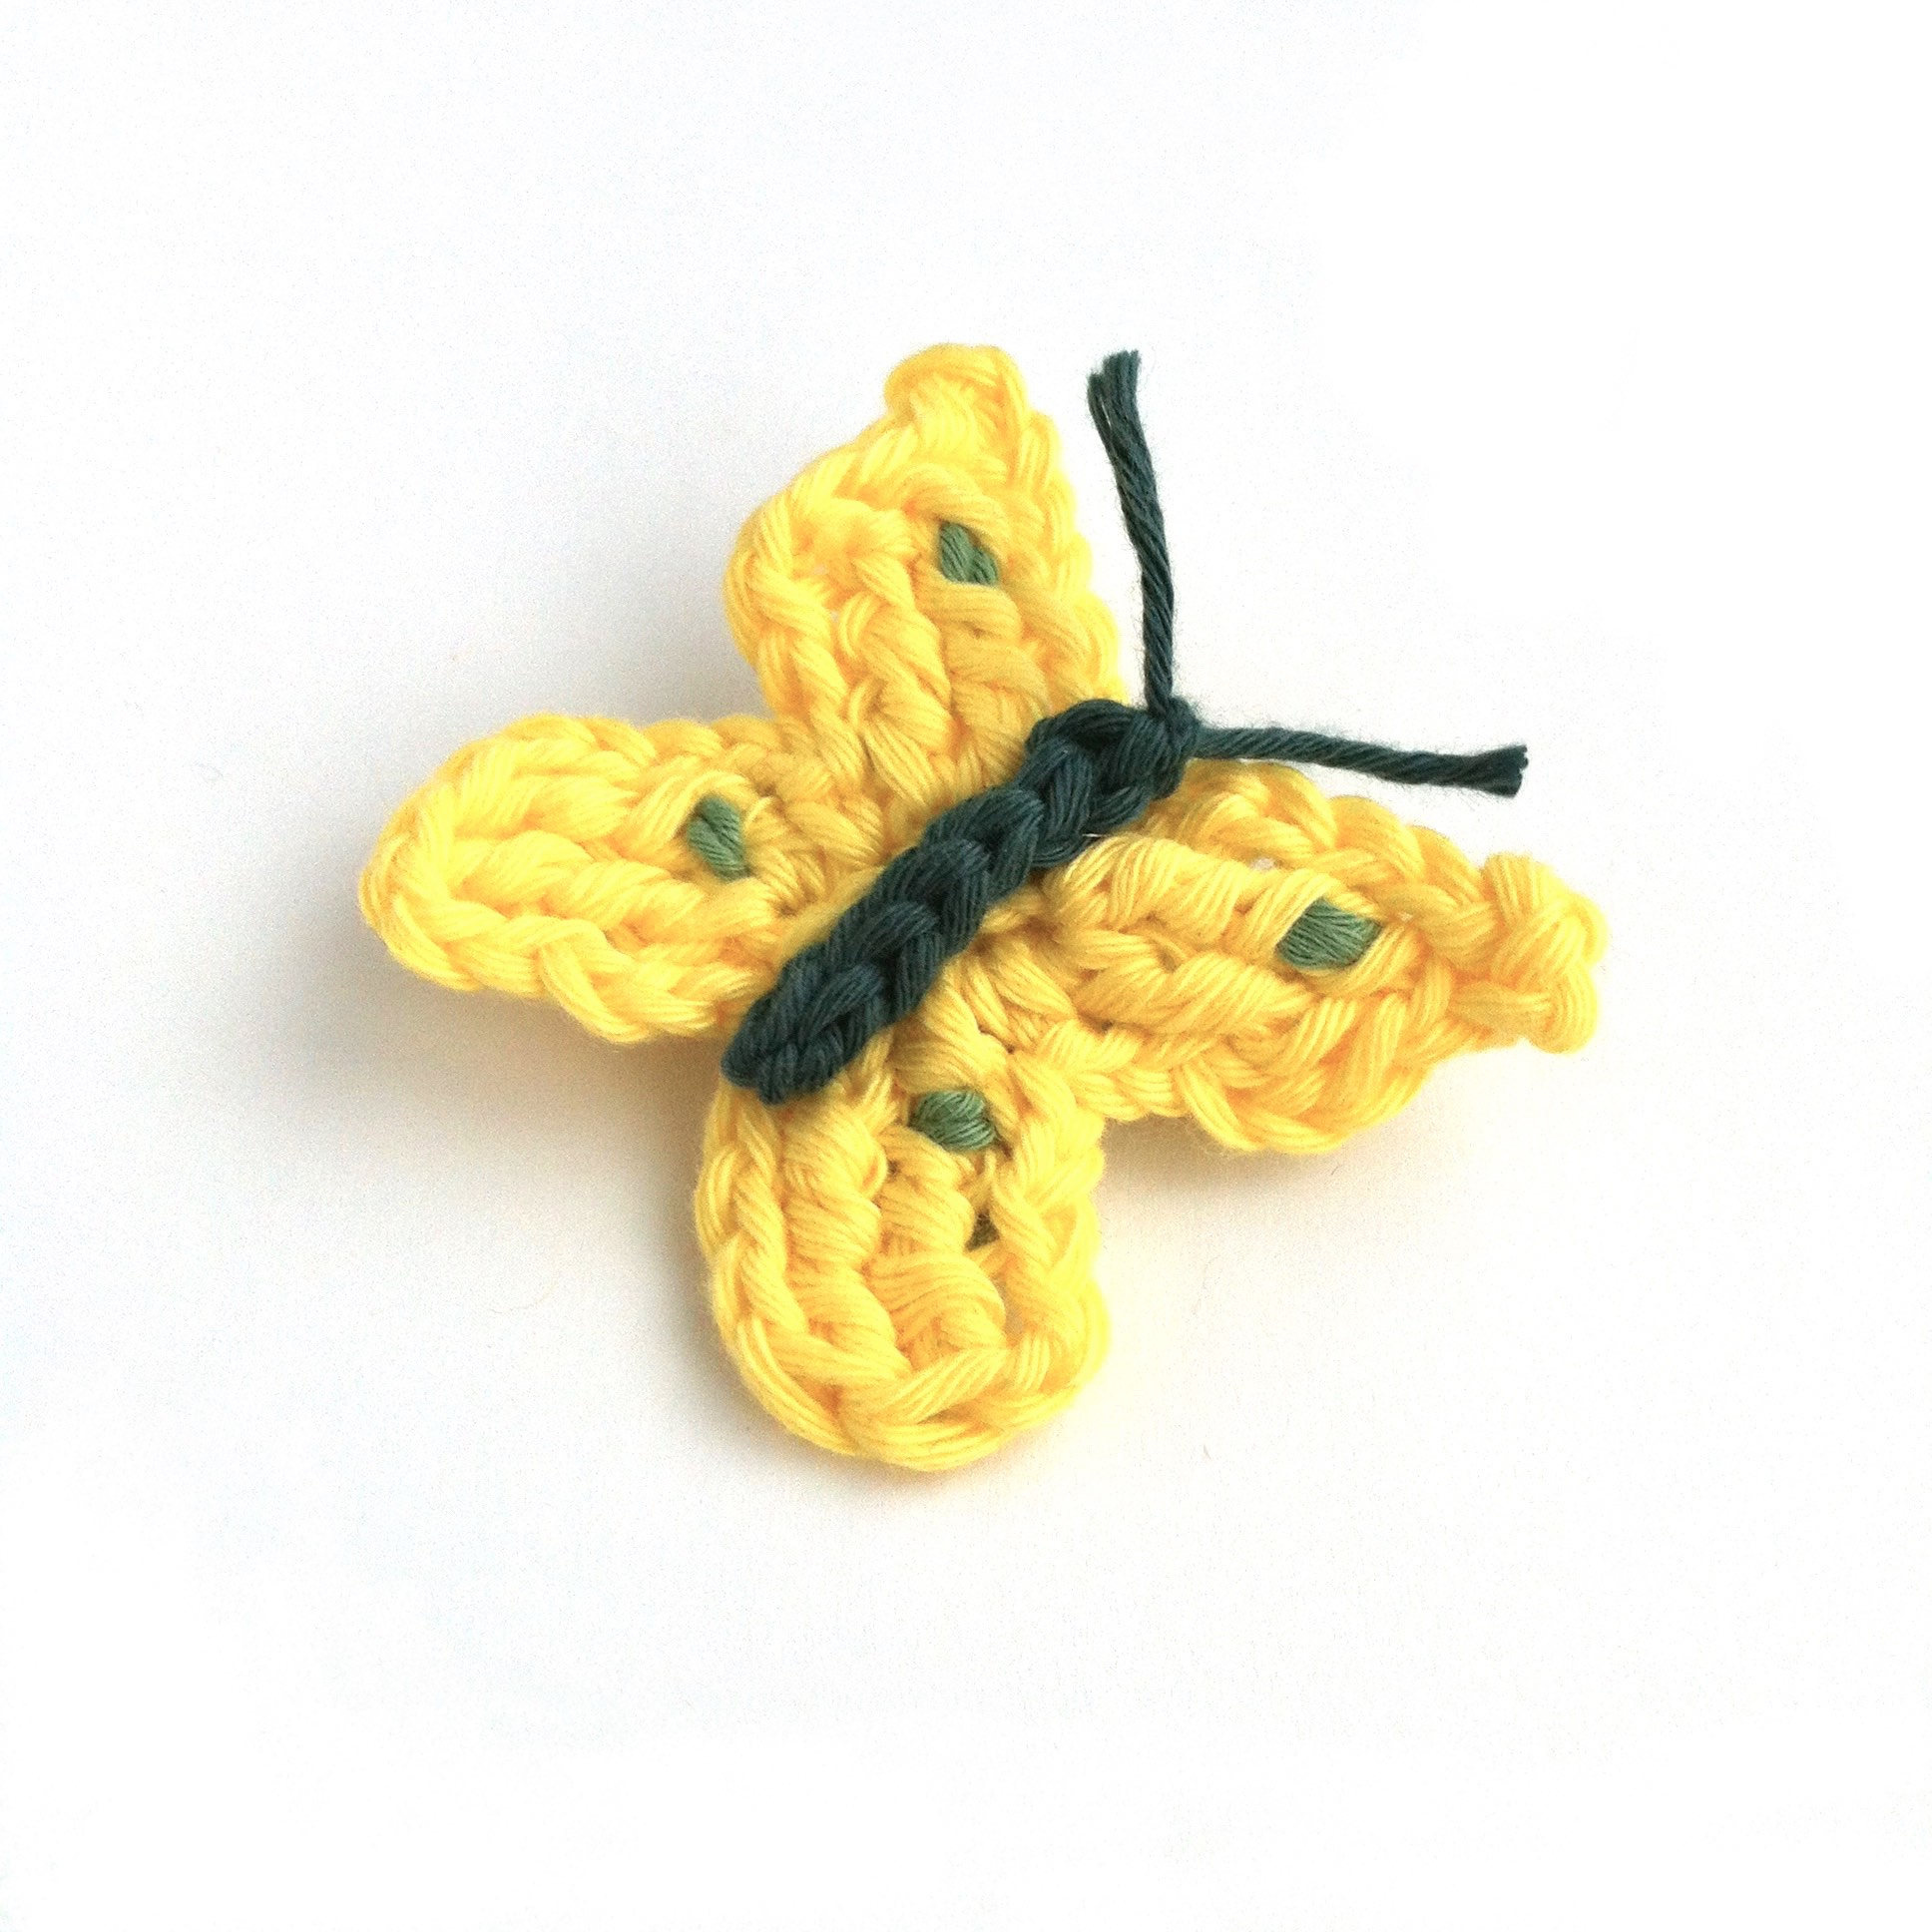 Handmade Butterfly Brooch in Organic Cotton